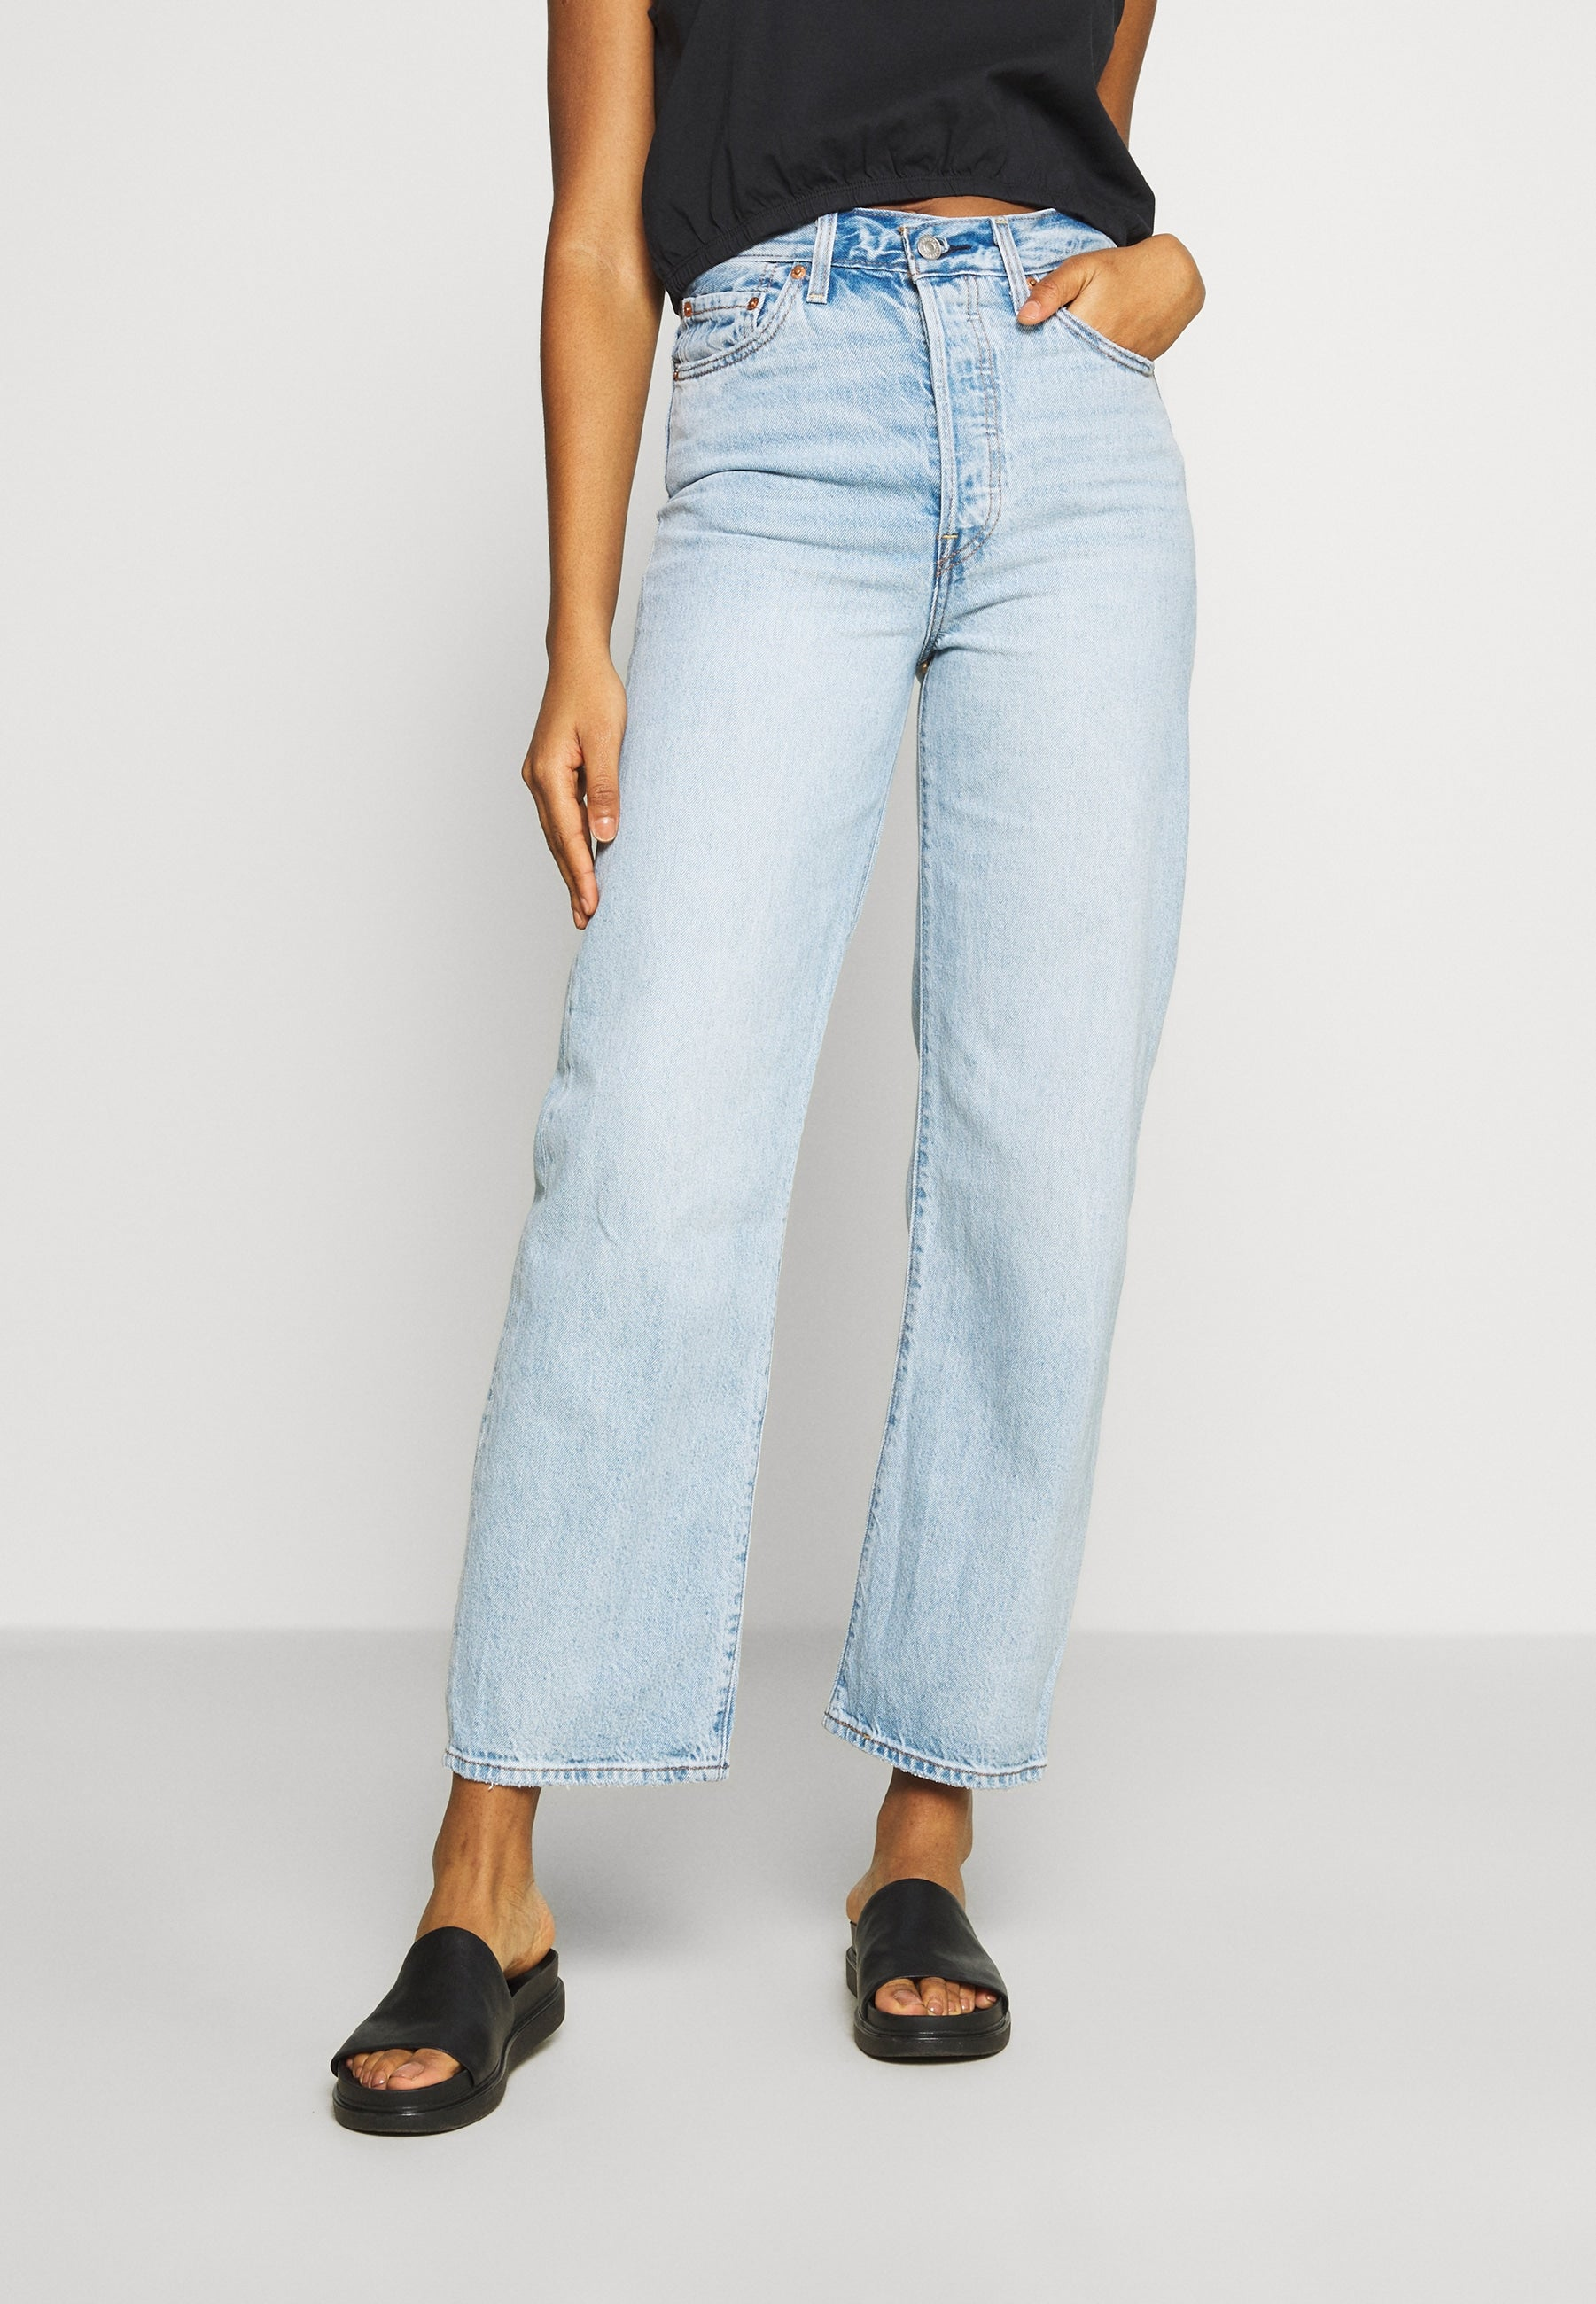 Levi's Ribcage Jean in Middle Road